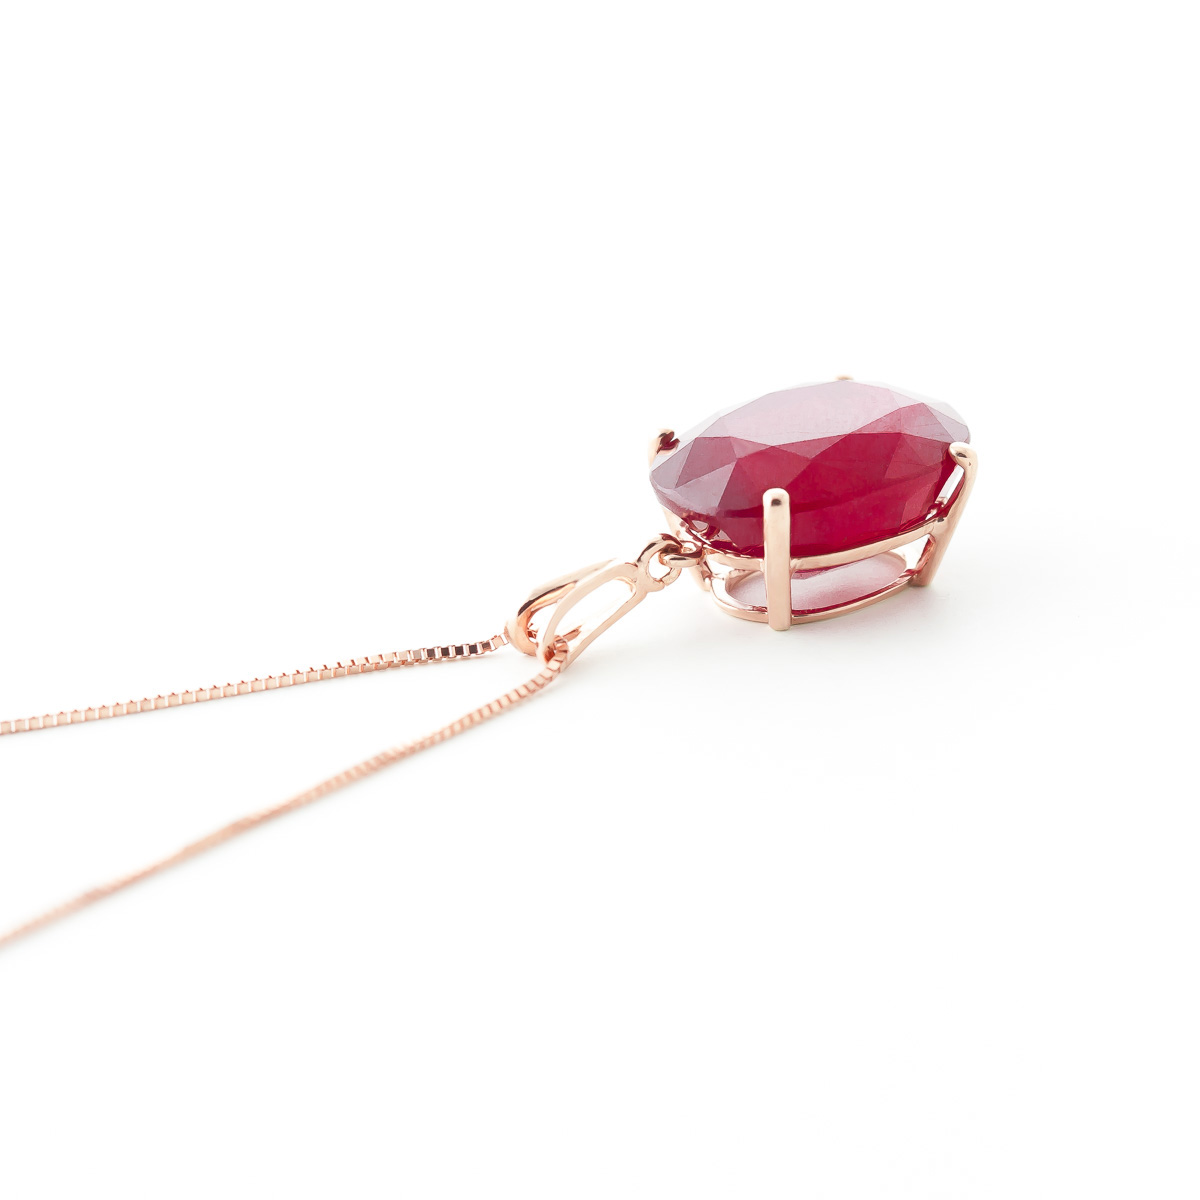 Oval Cut Ruby Pendant Necklace 7.7ct in 14K Rose Gold